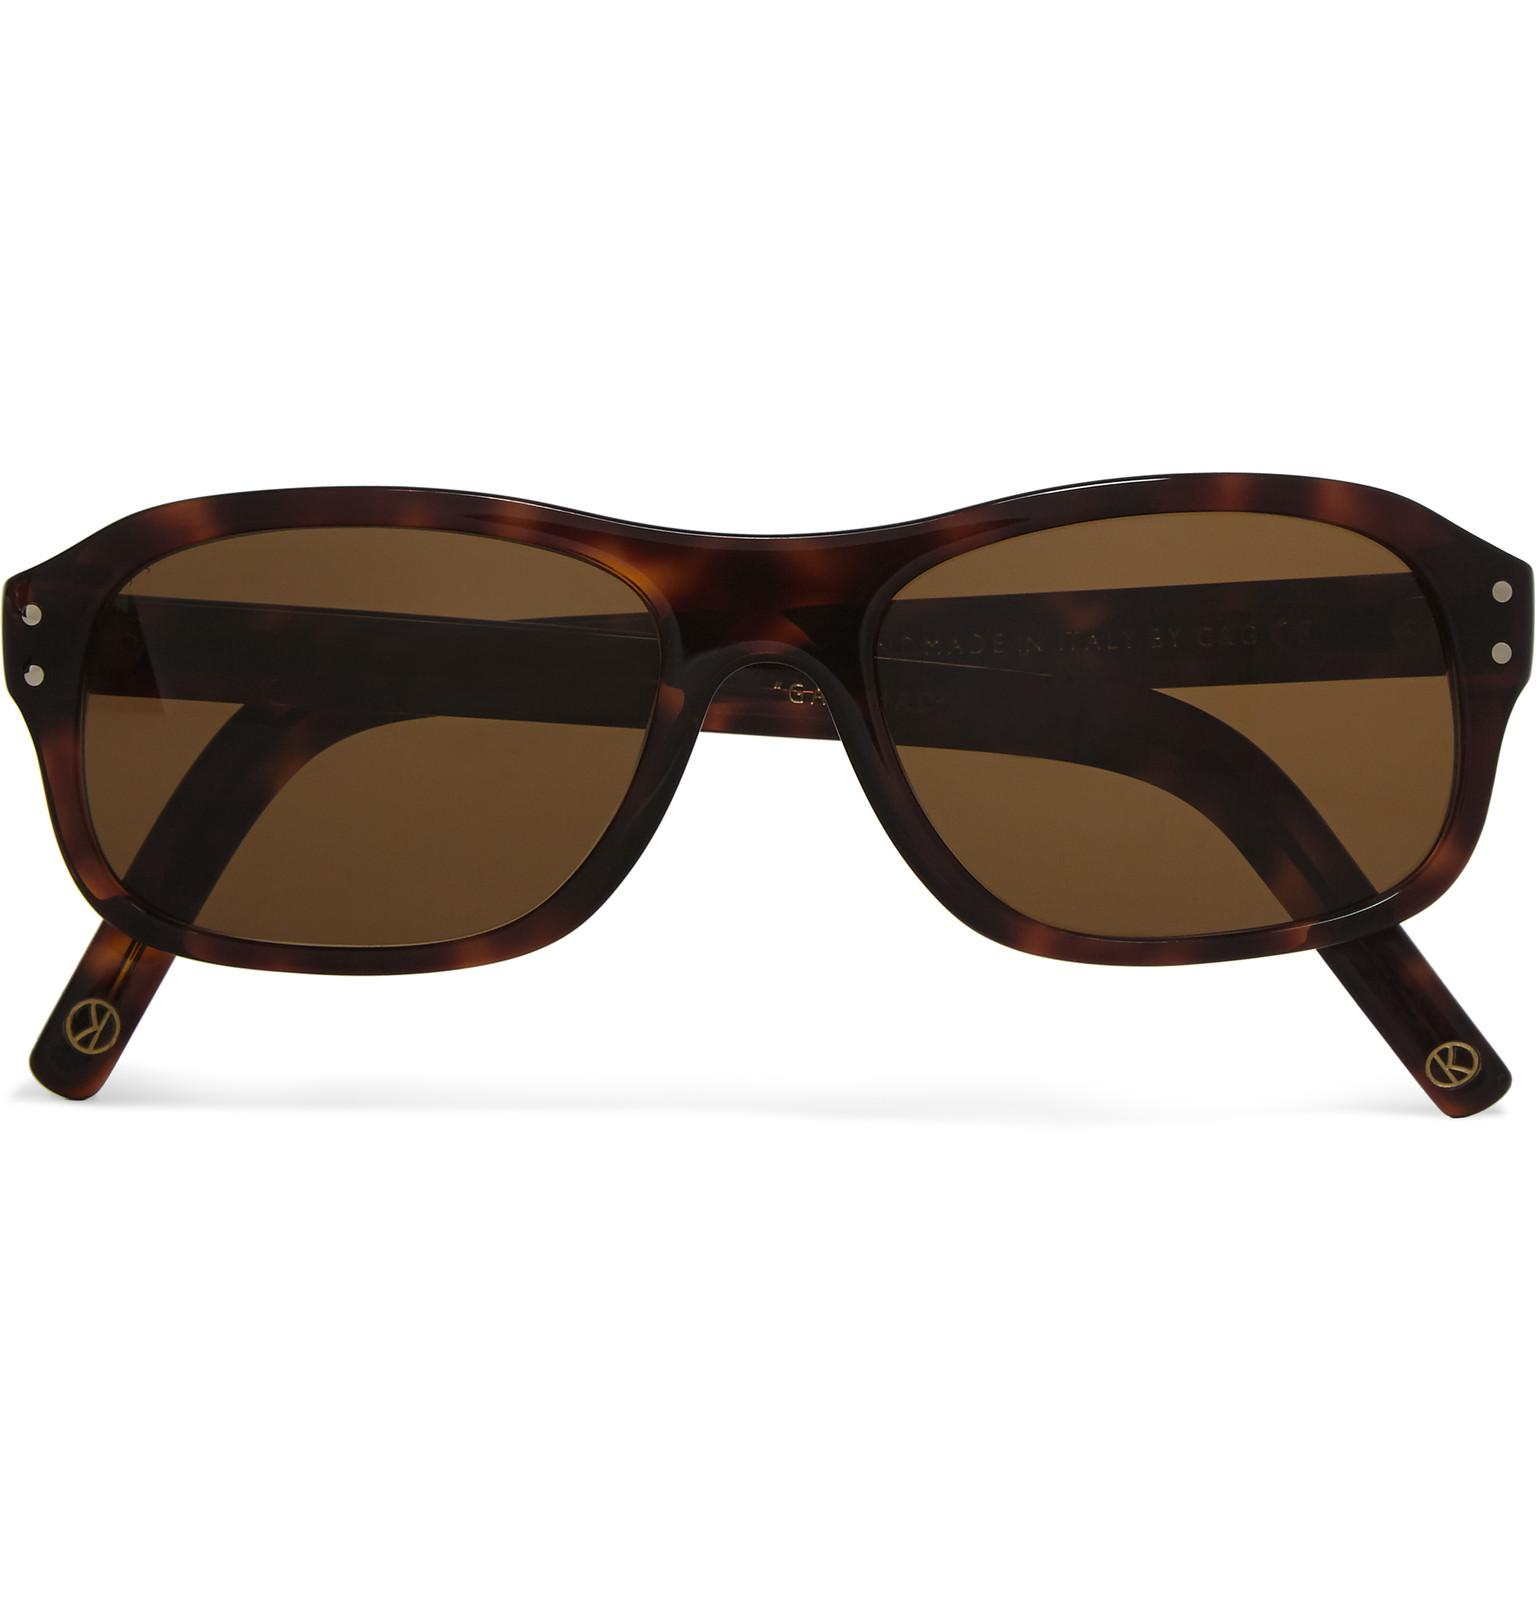 3a2daad980c Kingsman. Men s Brown Cutler And Gross Square-frame Acetate Optical  Sunglasses